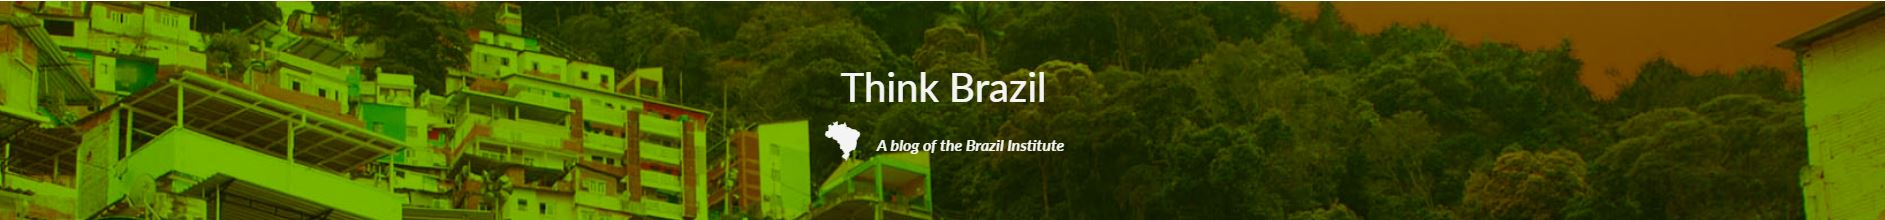 Return to Think Brazil